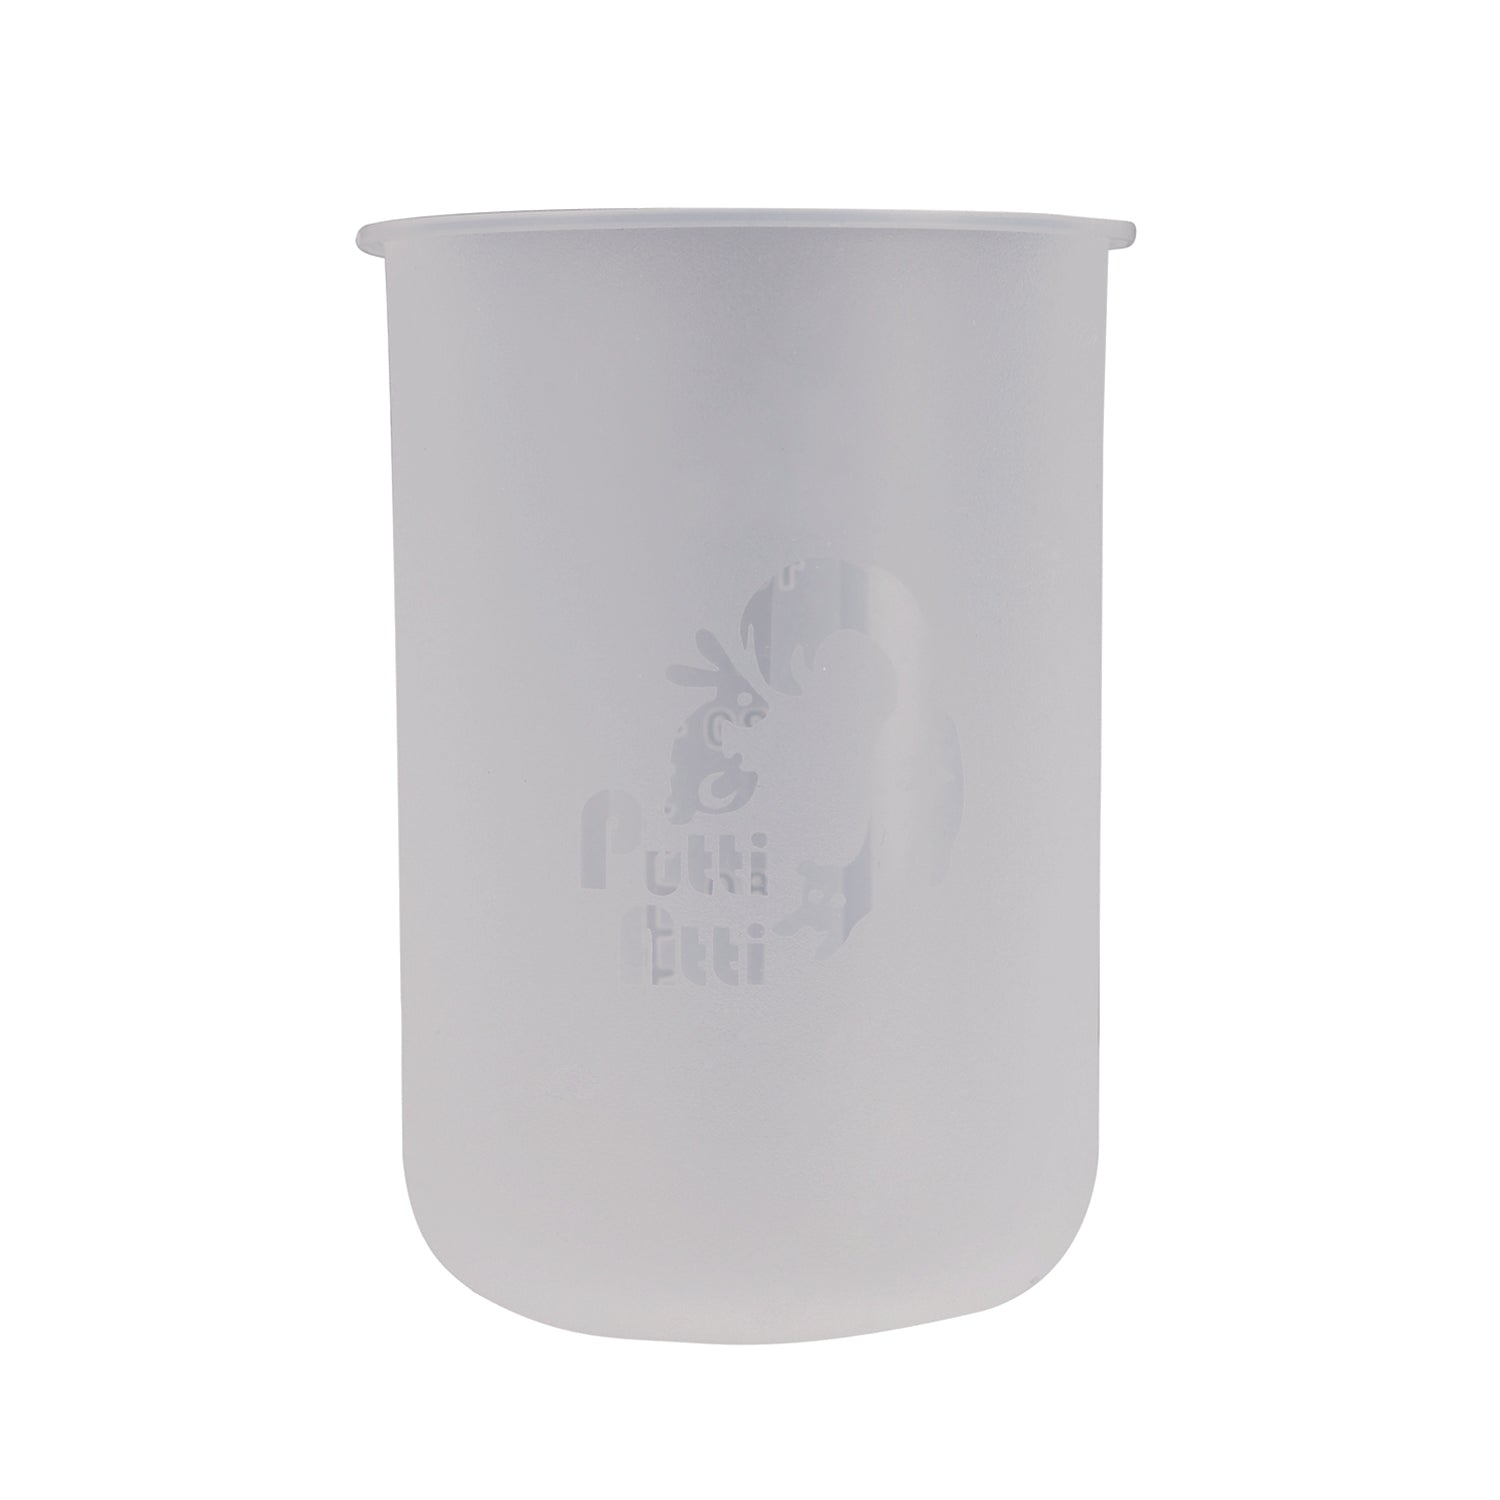 Inner Body (replacement for cup, 2pack)